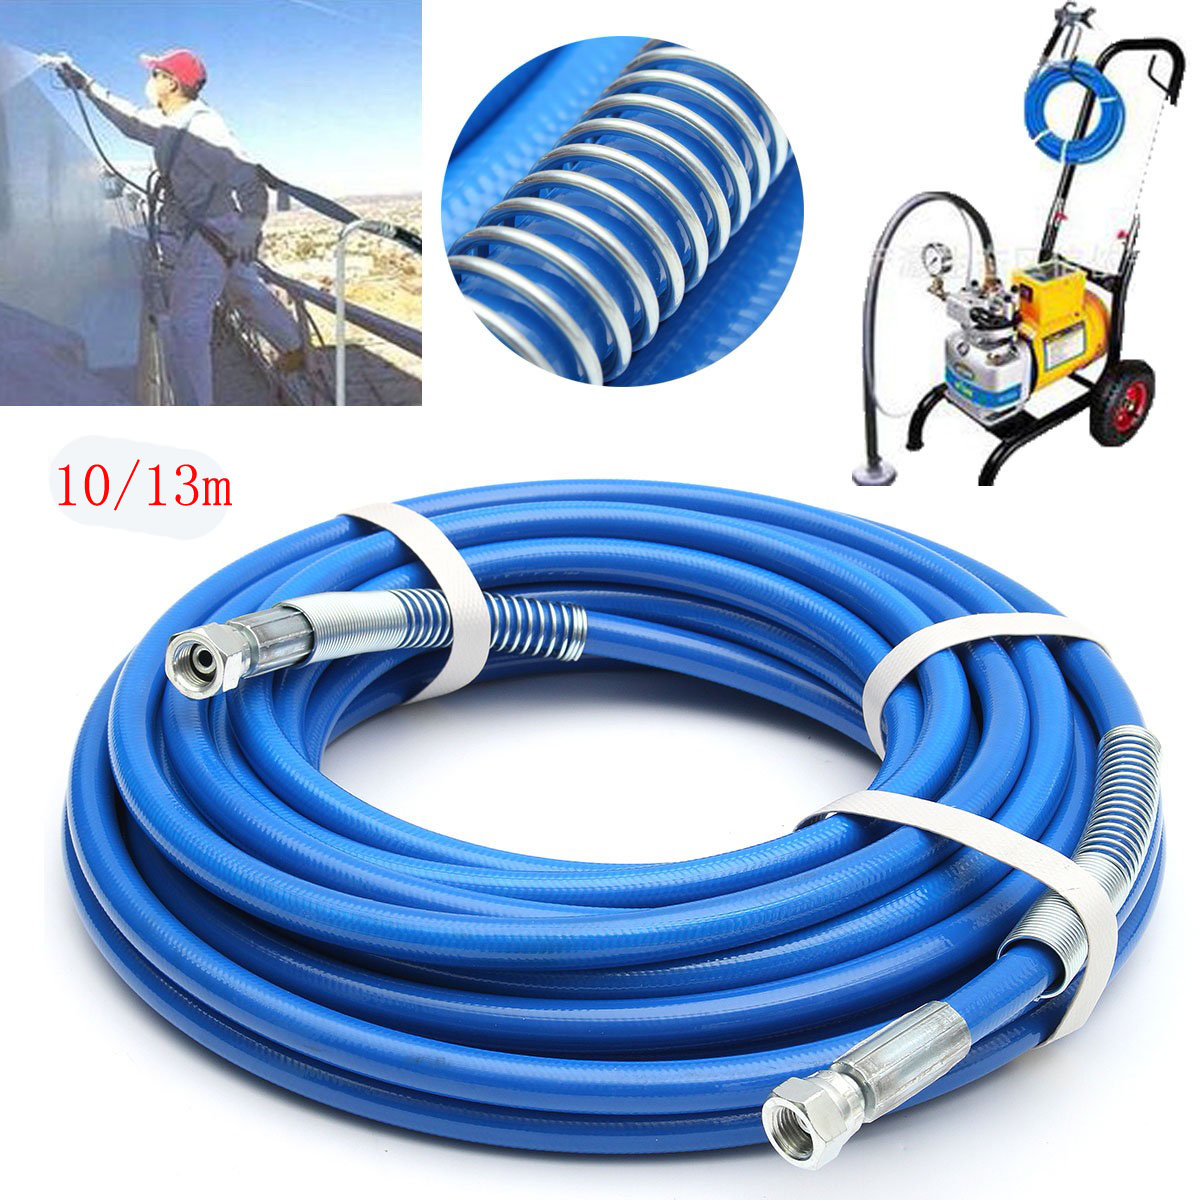 13M 5000PSI High Pressure Airless Paint Sprayer Hose Sprayer Gun Flexible Fiber 1/4'' Tube,Blue